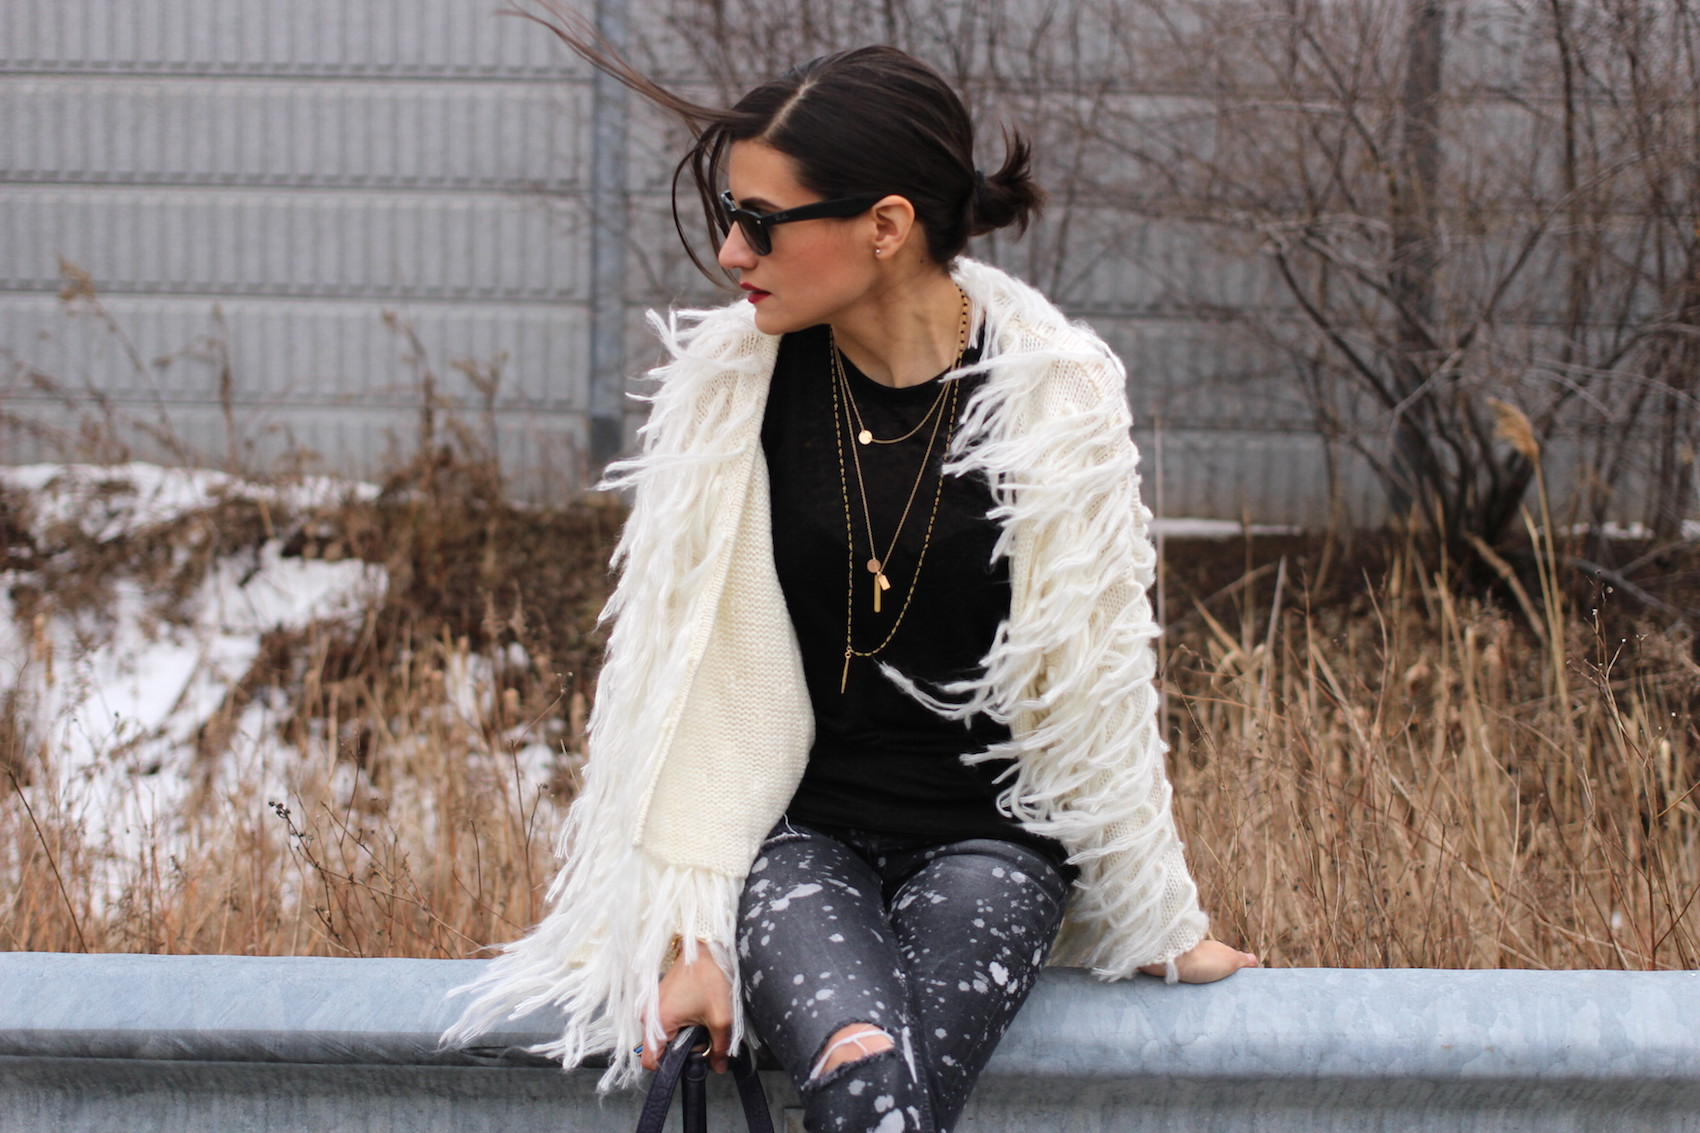 WoahStyle.com | Shag jacket cardigan with jeans and Alexander Wang accessories